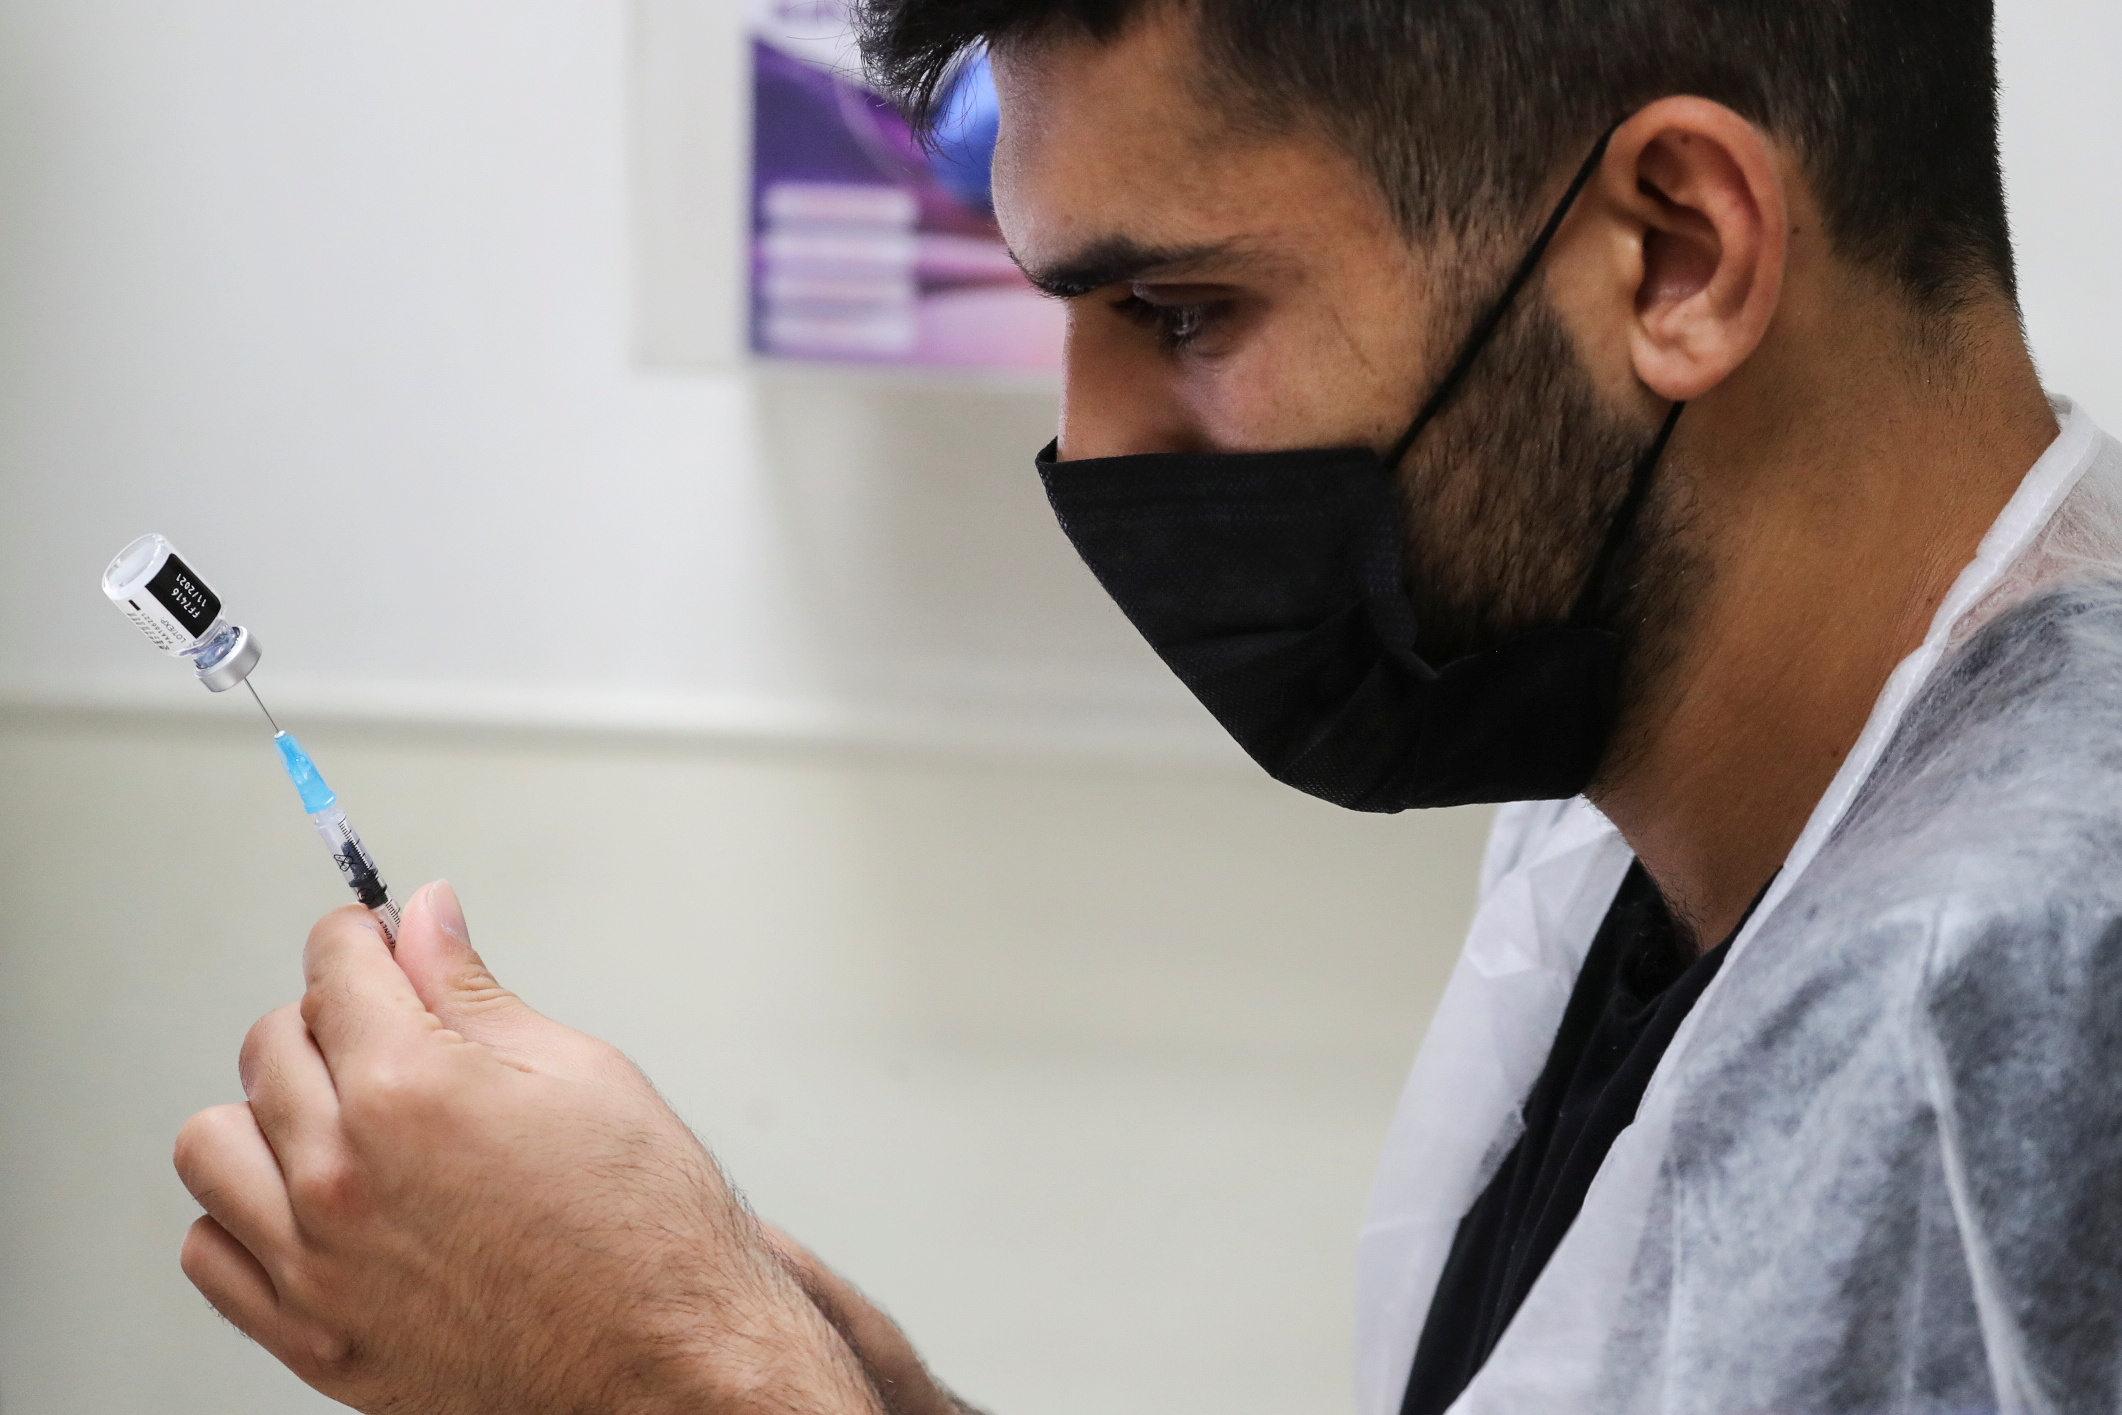 A medical worker prepares to administer a patient's third dose of the coronavirus disease (COVID-19) vaccine as country launches booster shots for over 40-year-olds, in Jerusalem August 20, 2021. REUTERS/Ammar Awad